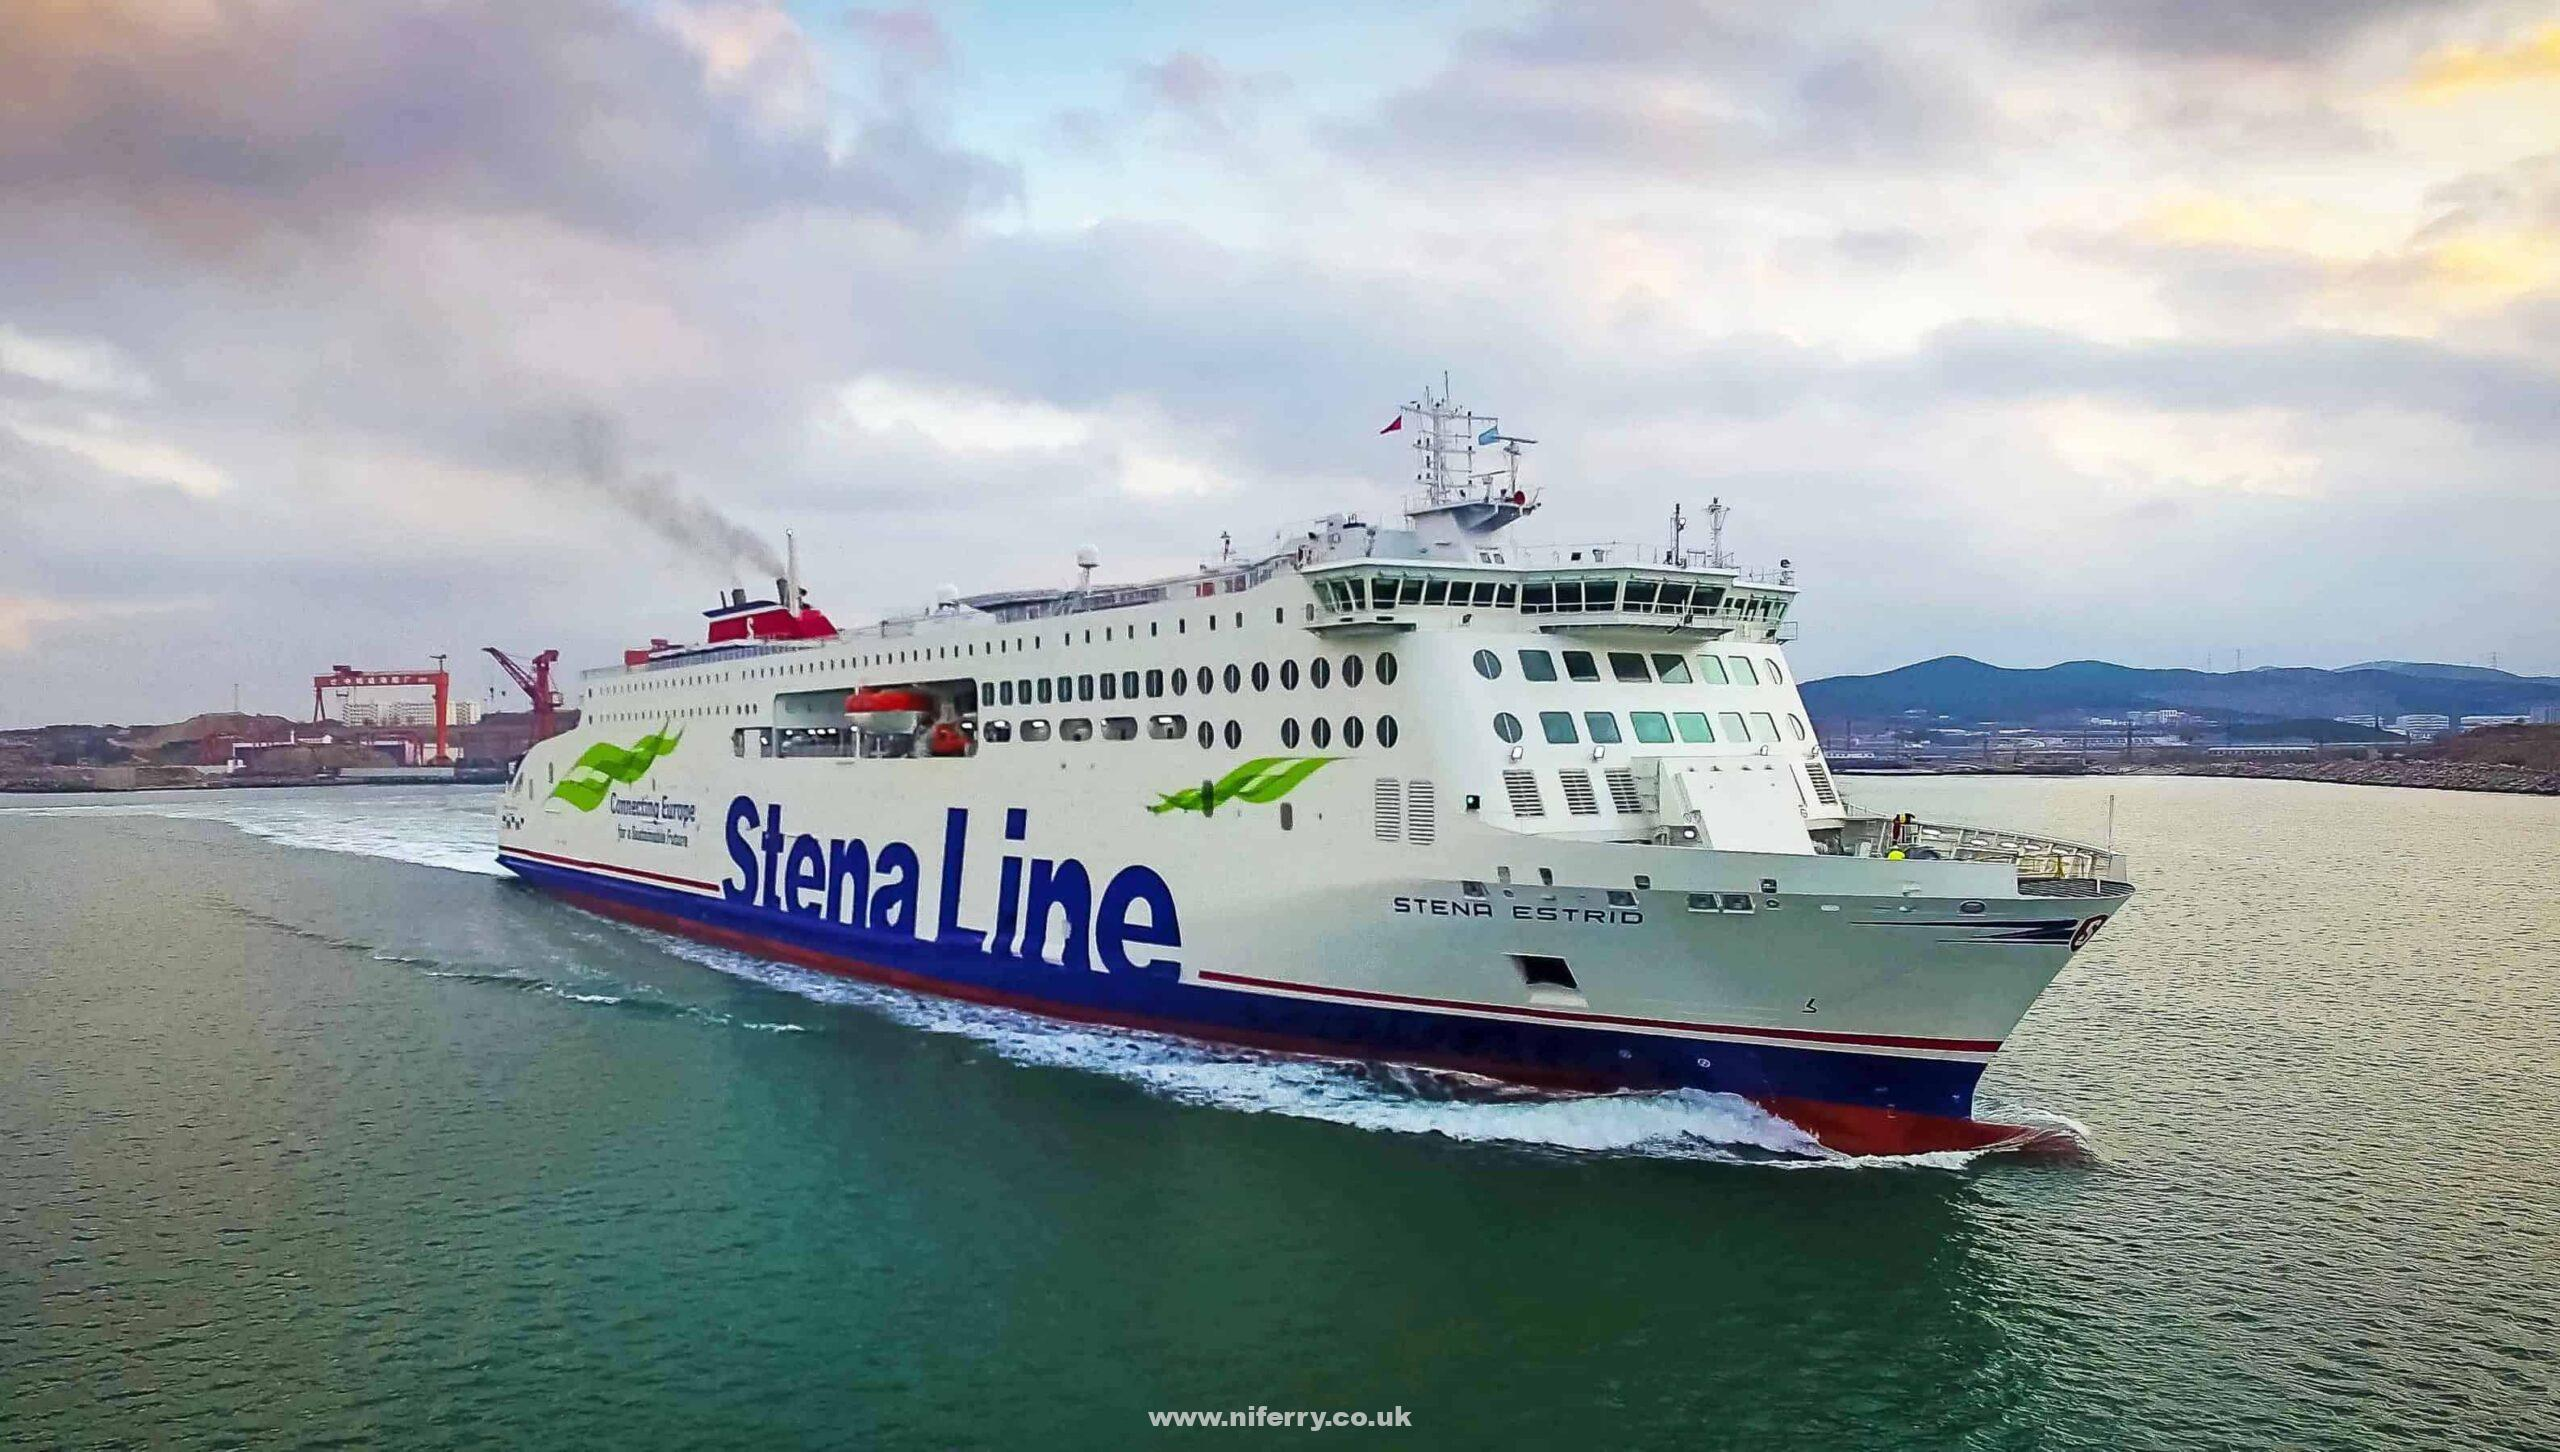 BON VOYAGE: Stena Line's newest ferry Stena Estrid departs the AVIC Weihai Shipyard in north-western China, bound for its new home on the Irish Sea between Ireland and Britain. Manned by a much-reduced crew of 27, with no passengers on board, the ship will travel on a journey of well over 10,000 miles, taking just over one month and making a number of stops on the way, before finally arriving in Wales from where it will start service in January on the Dublin to Holyhead route.